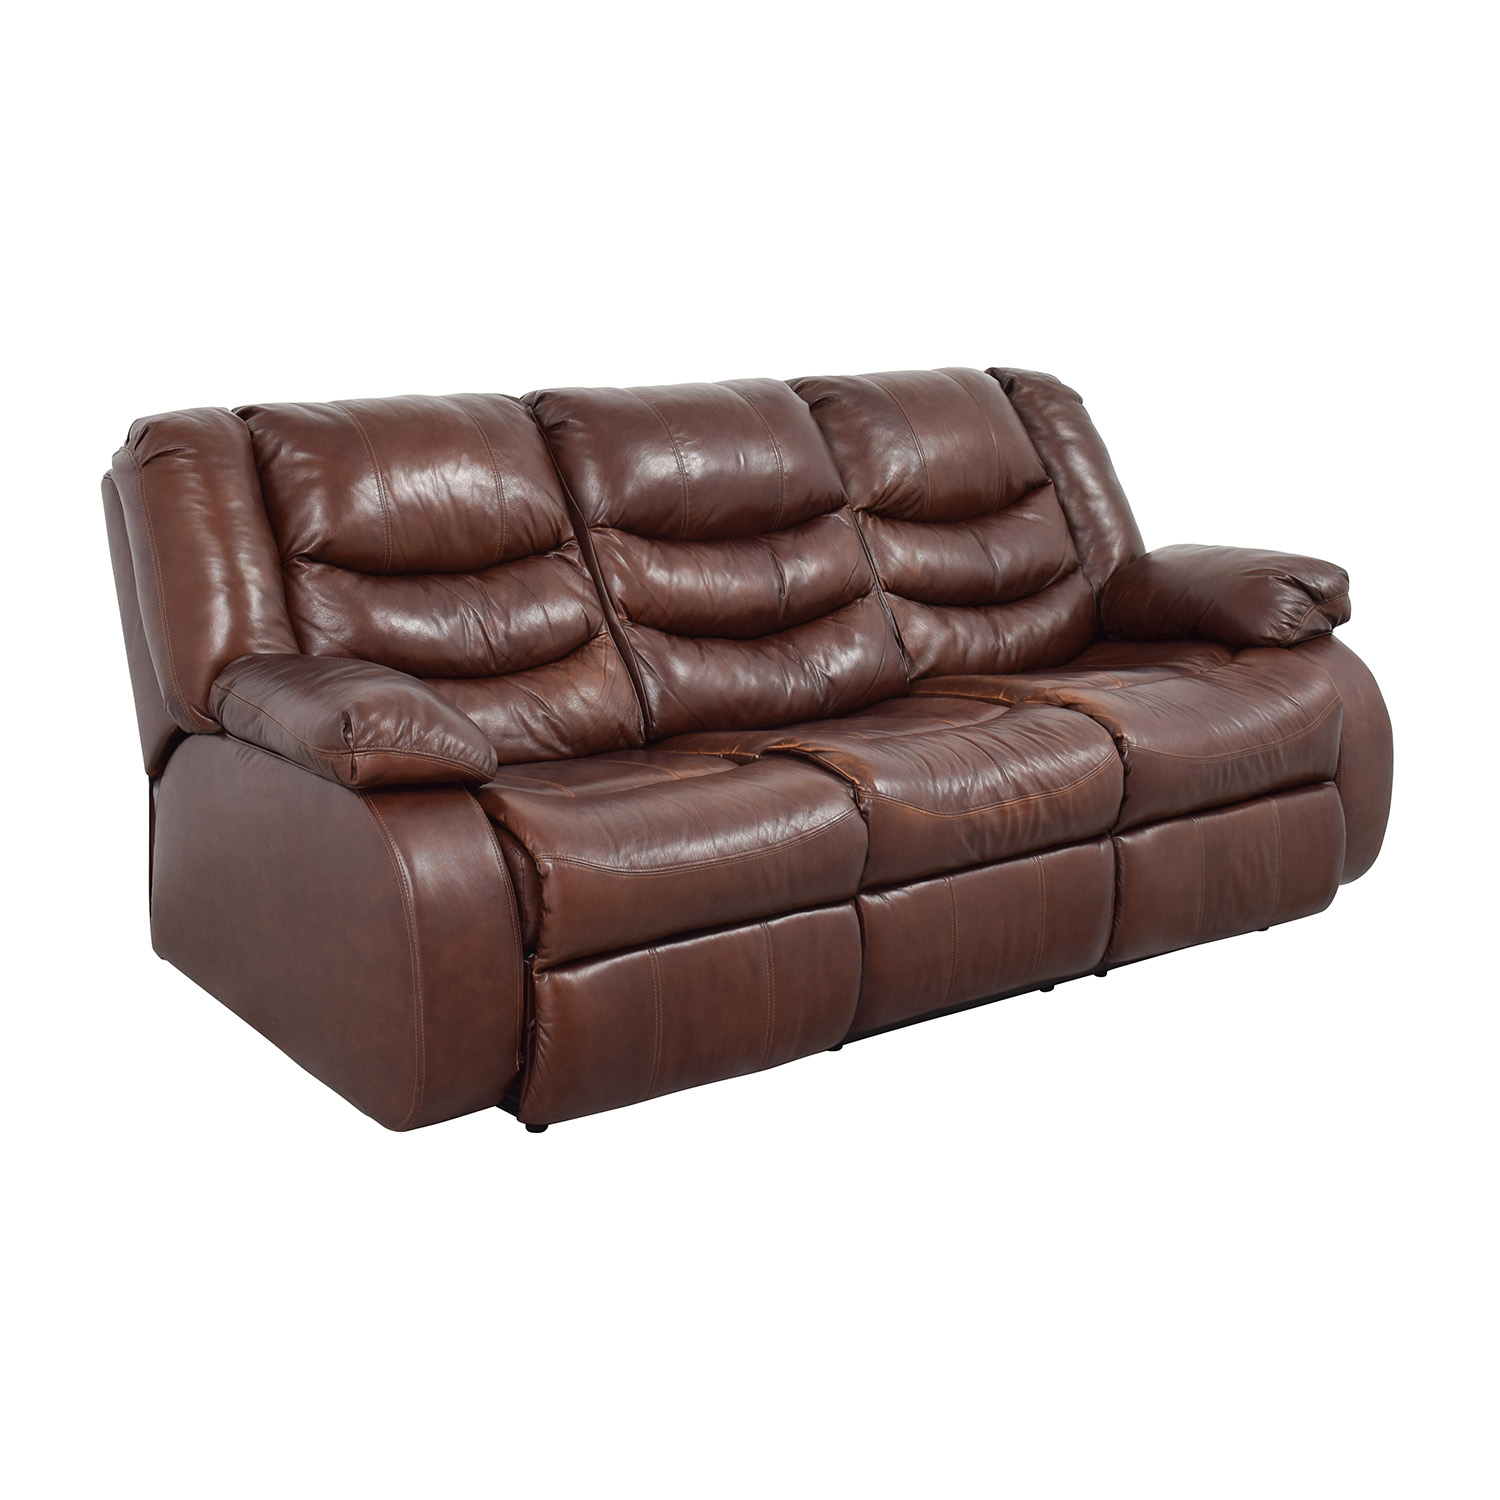 81 Off Ashley S Furniture Ashley Furniture Large Brown